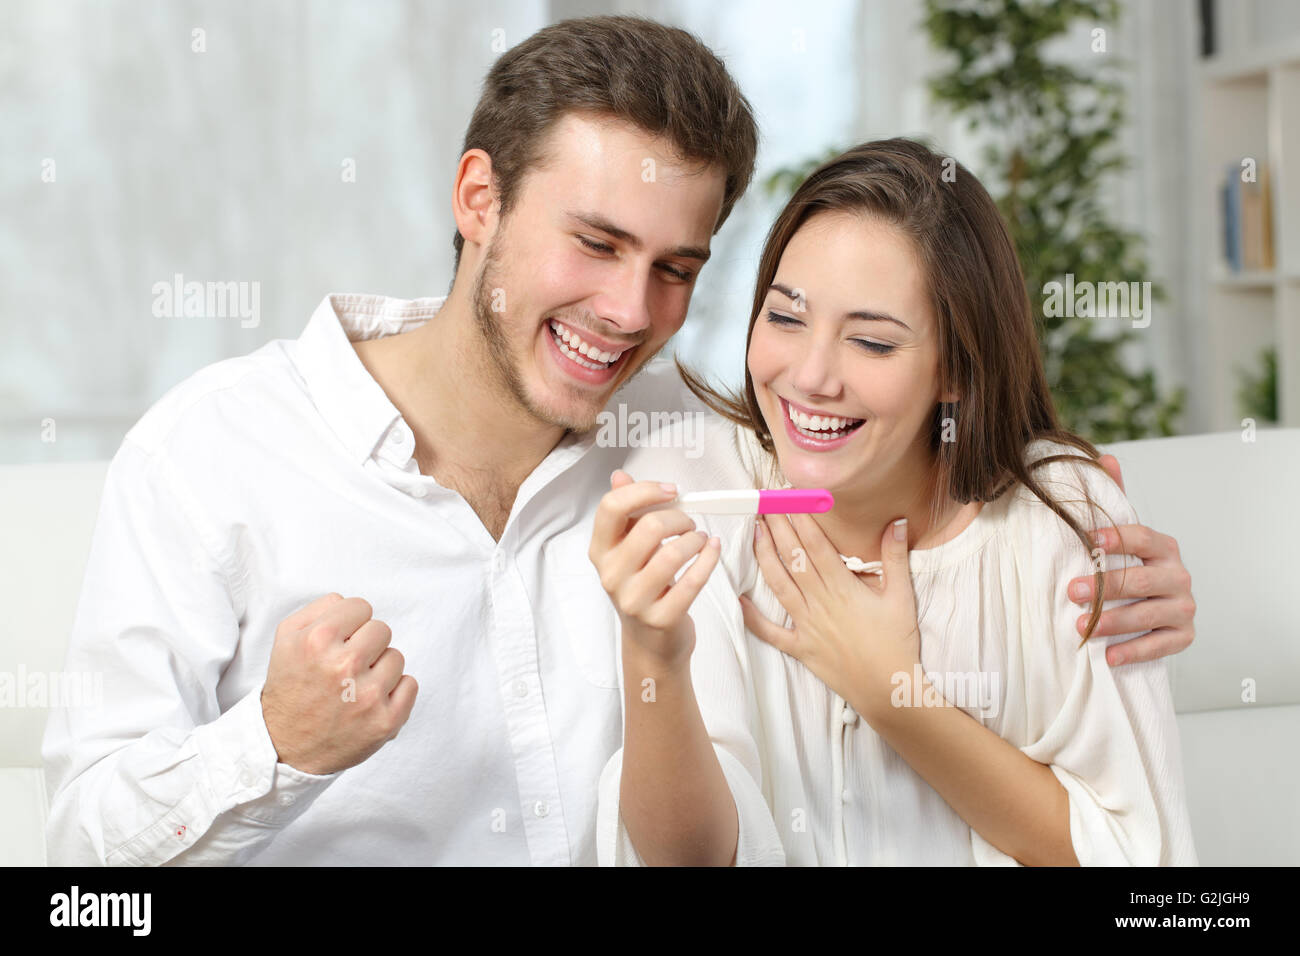 Happy excited couple making positive pregnancy test and celebrating - Stock Image